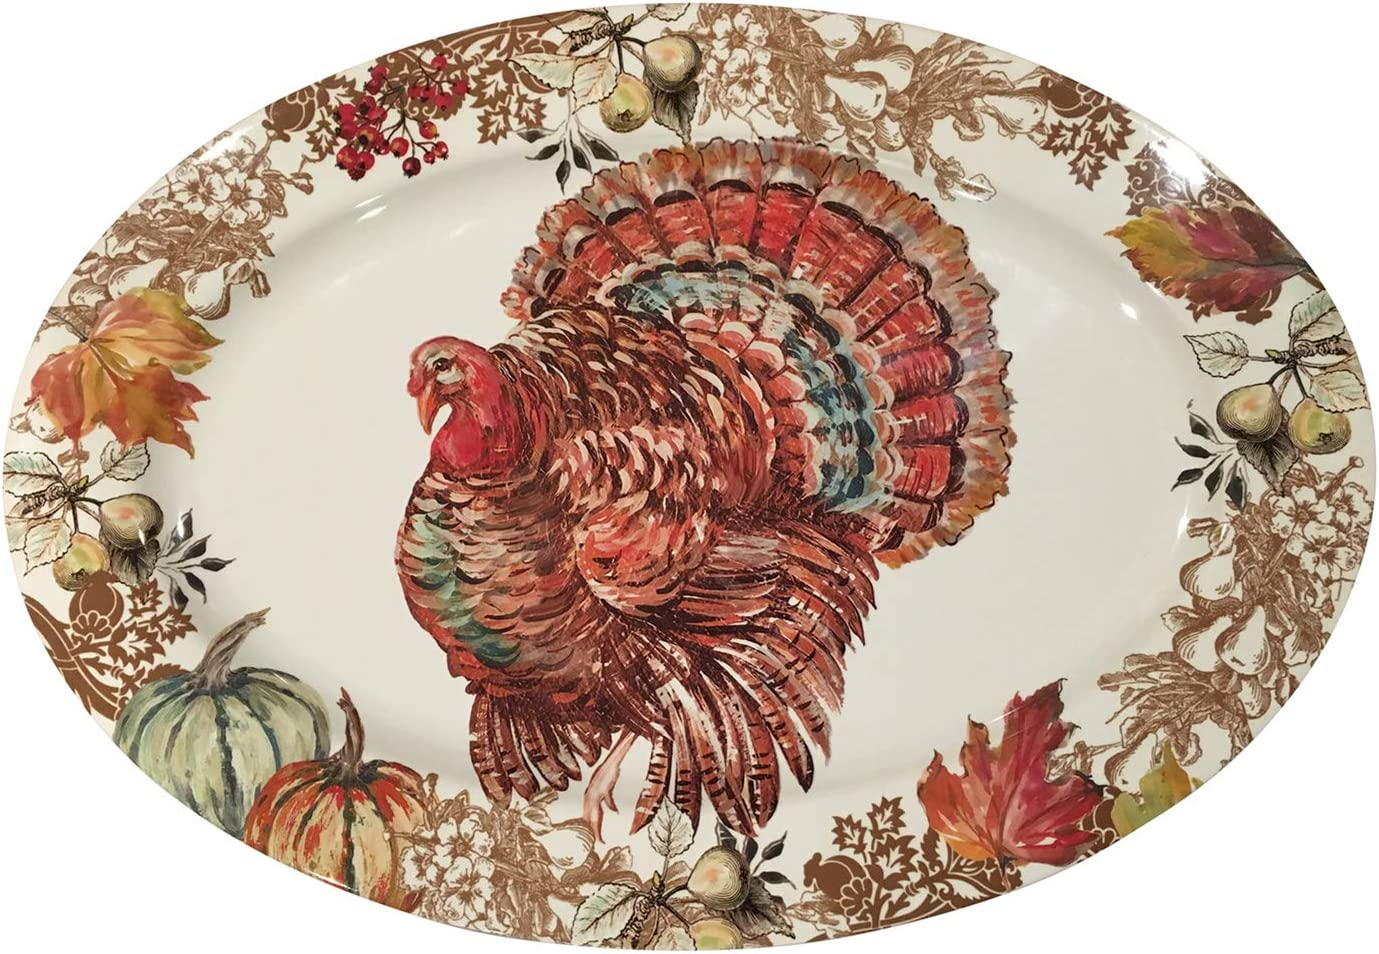 Amazon Com Fall Harvest Thanksgiving Turkey Heavyweight Melamine Oval Serving Platter 20 Inch X 14 Inch Platters